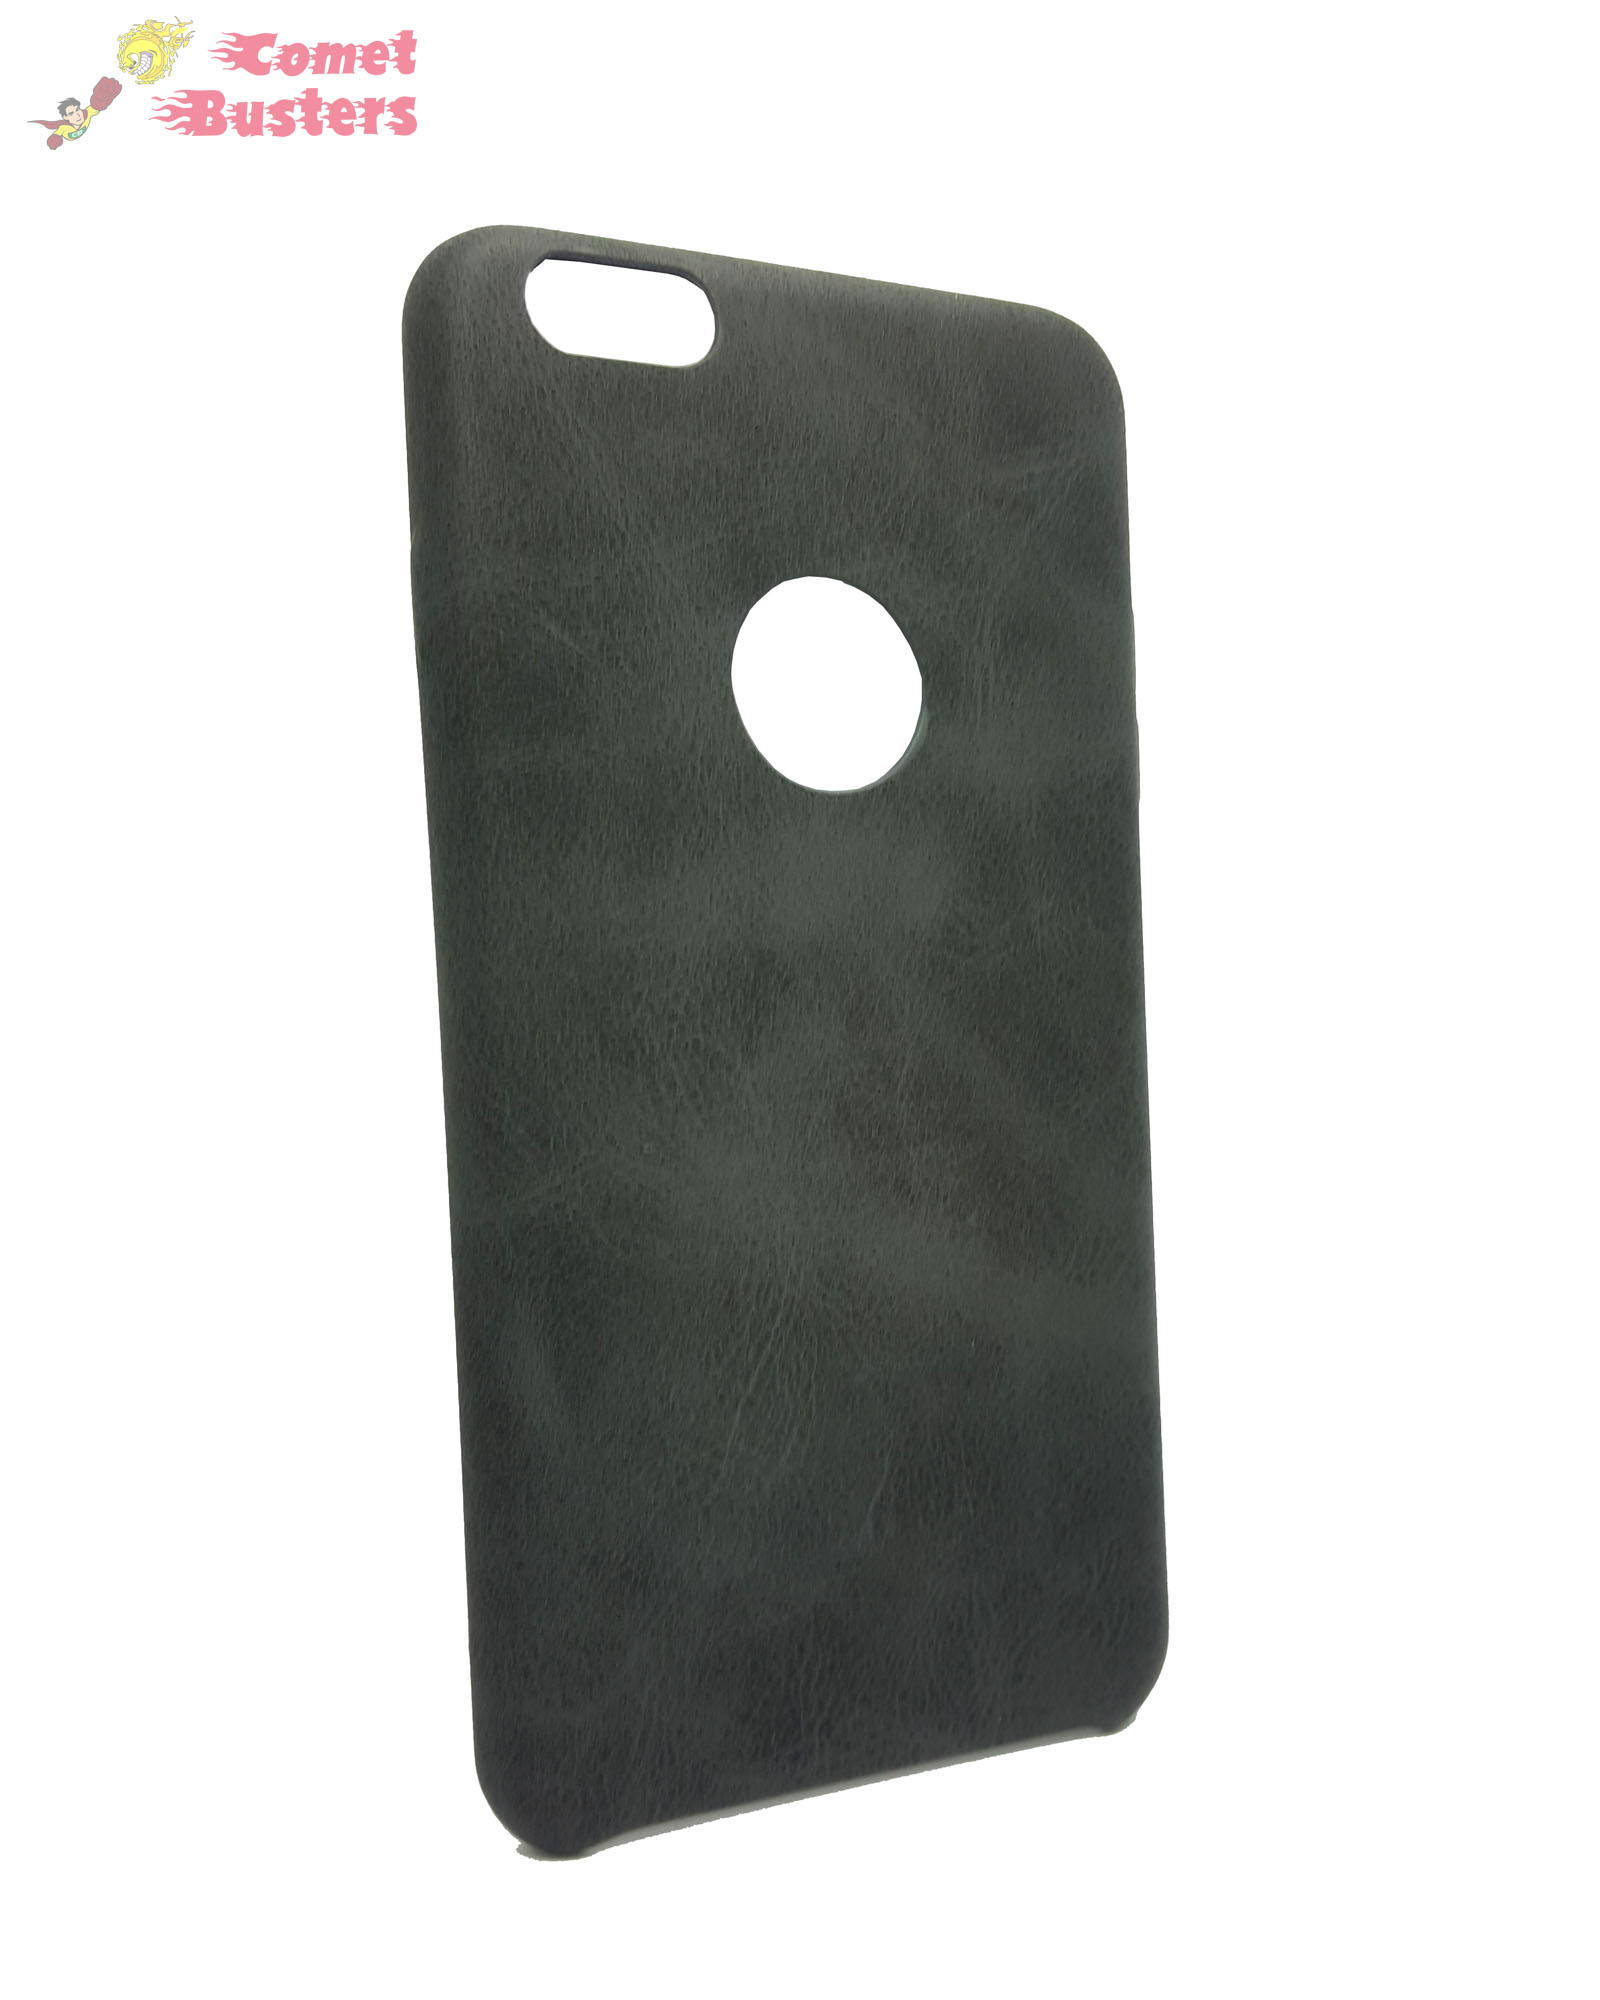 Apple iPhone 6s Plus Back Cover Case |Leather |